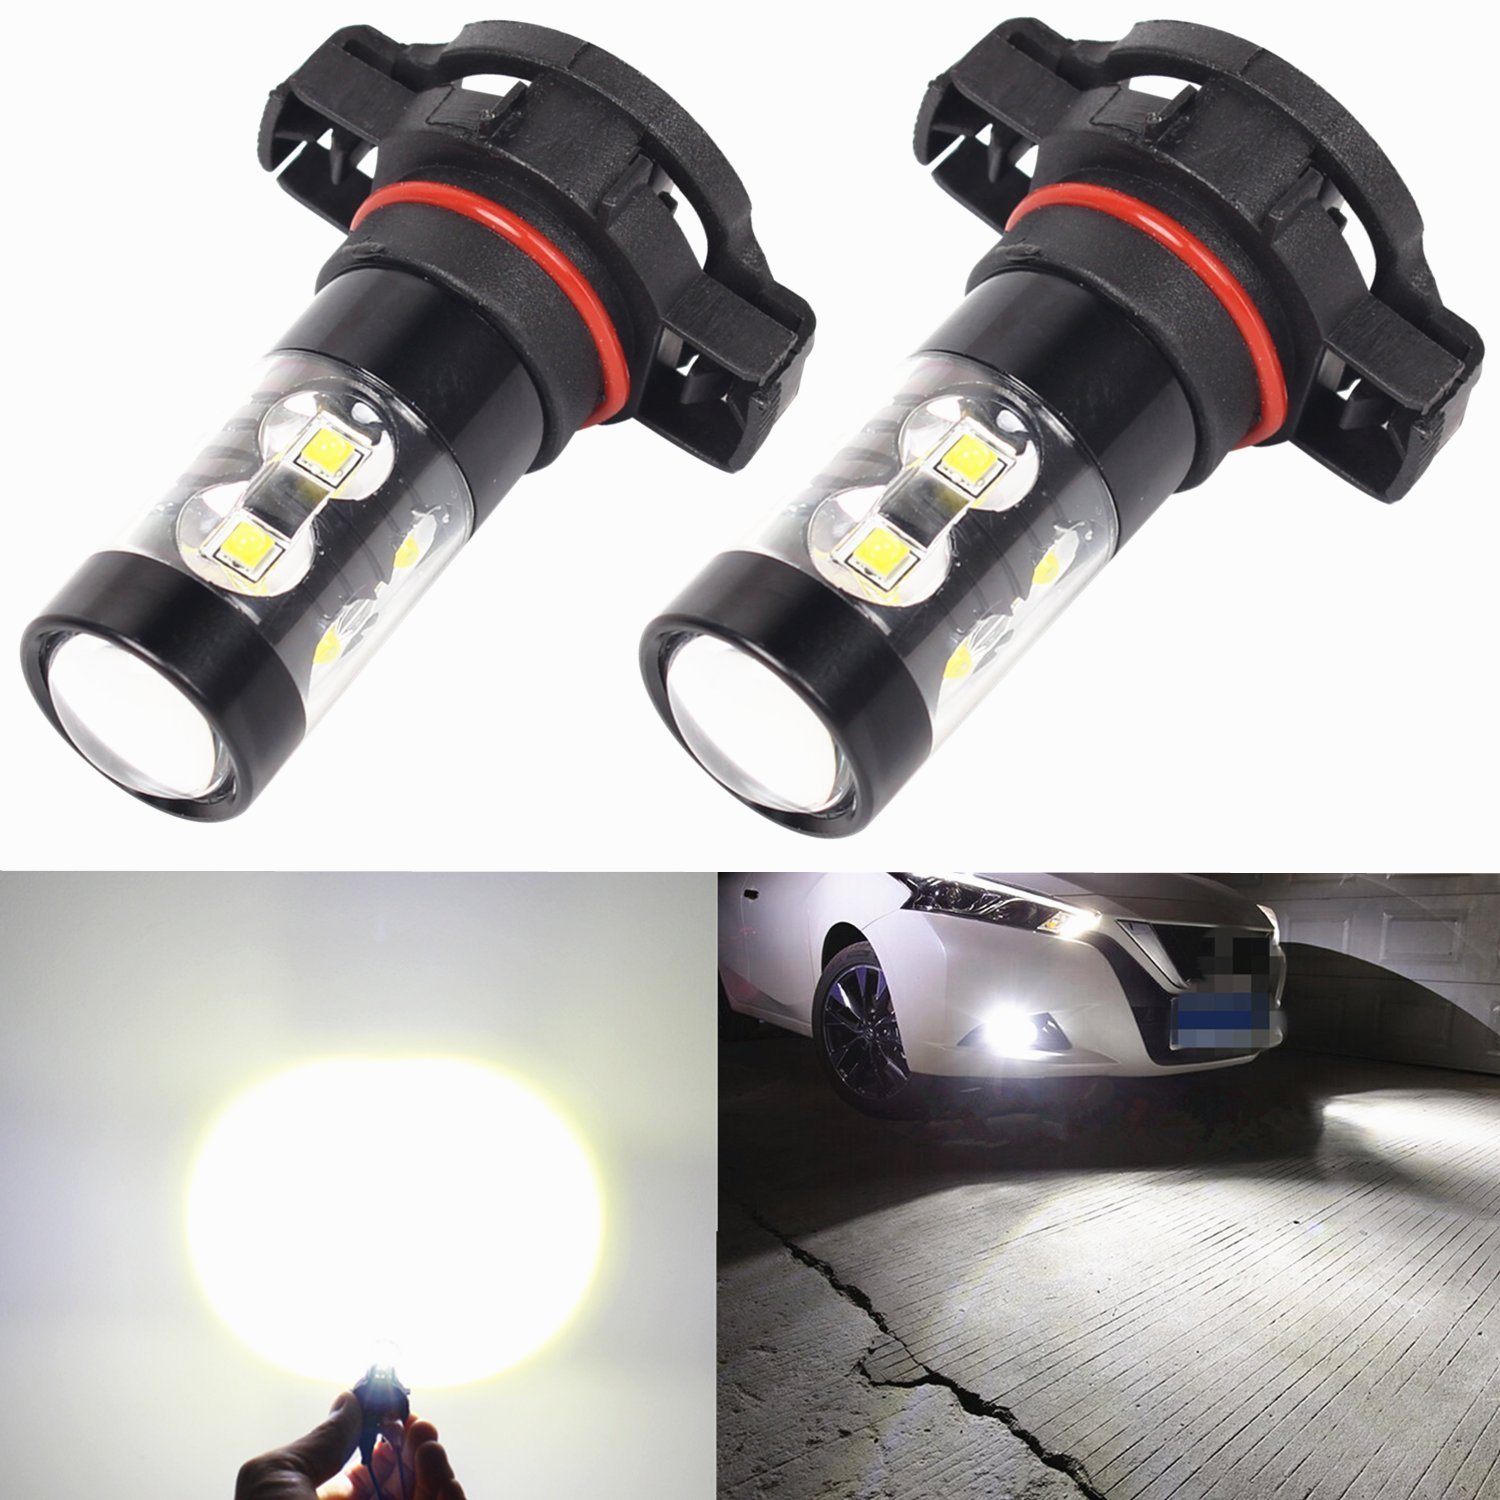 Alla Lighting 2504 PSX24W 50W High Power Xtremely Super Bright White LED Lights Bulbs for Fog Light Lamp Replacement